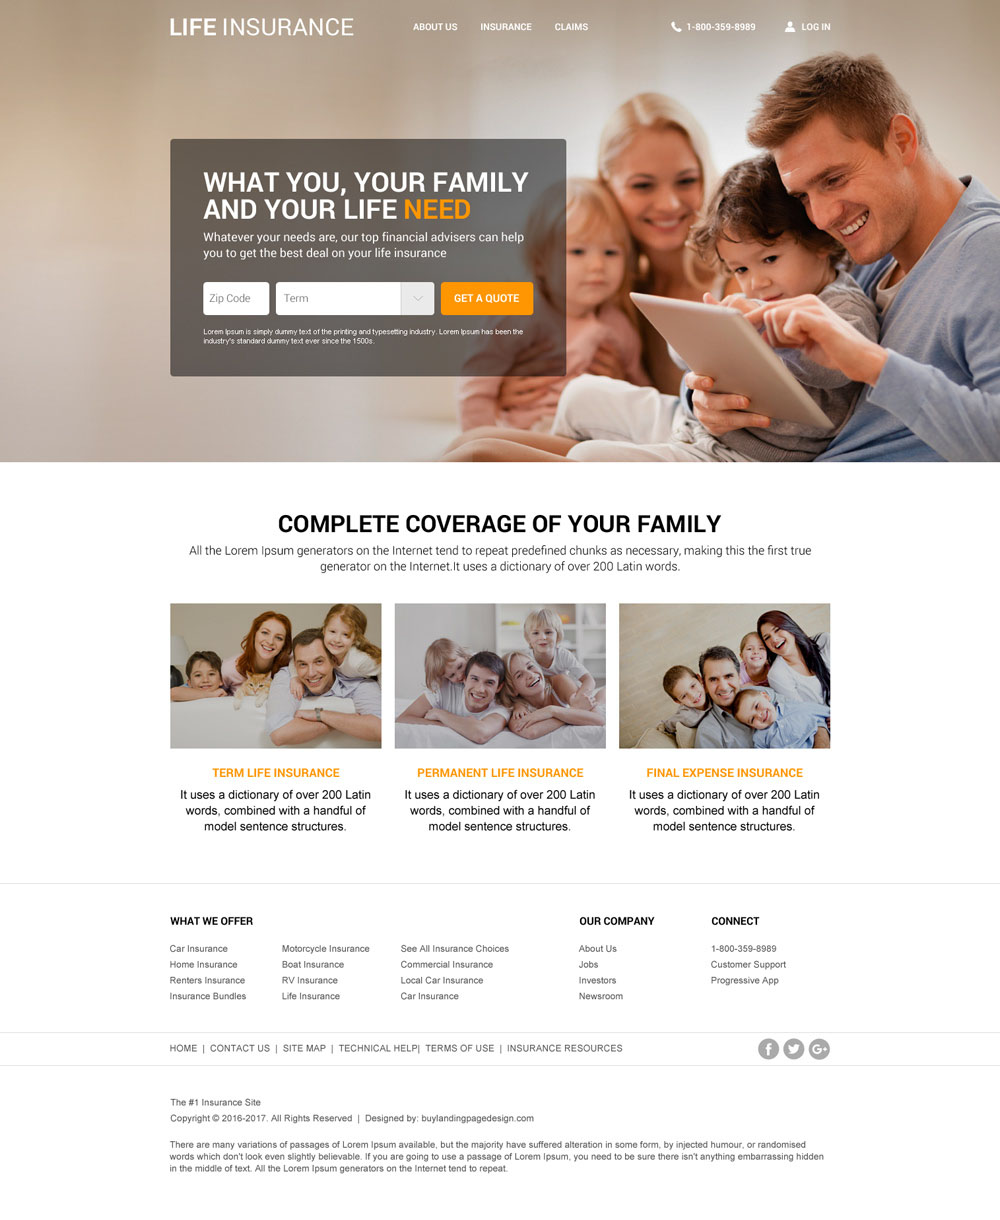 life insurance agency responsive website template to create beautiful